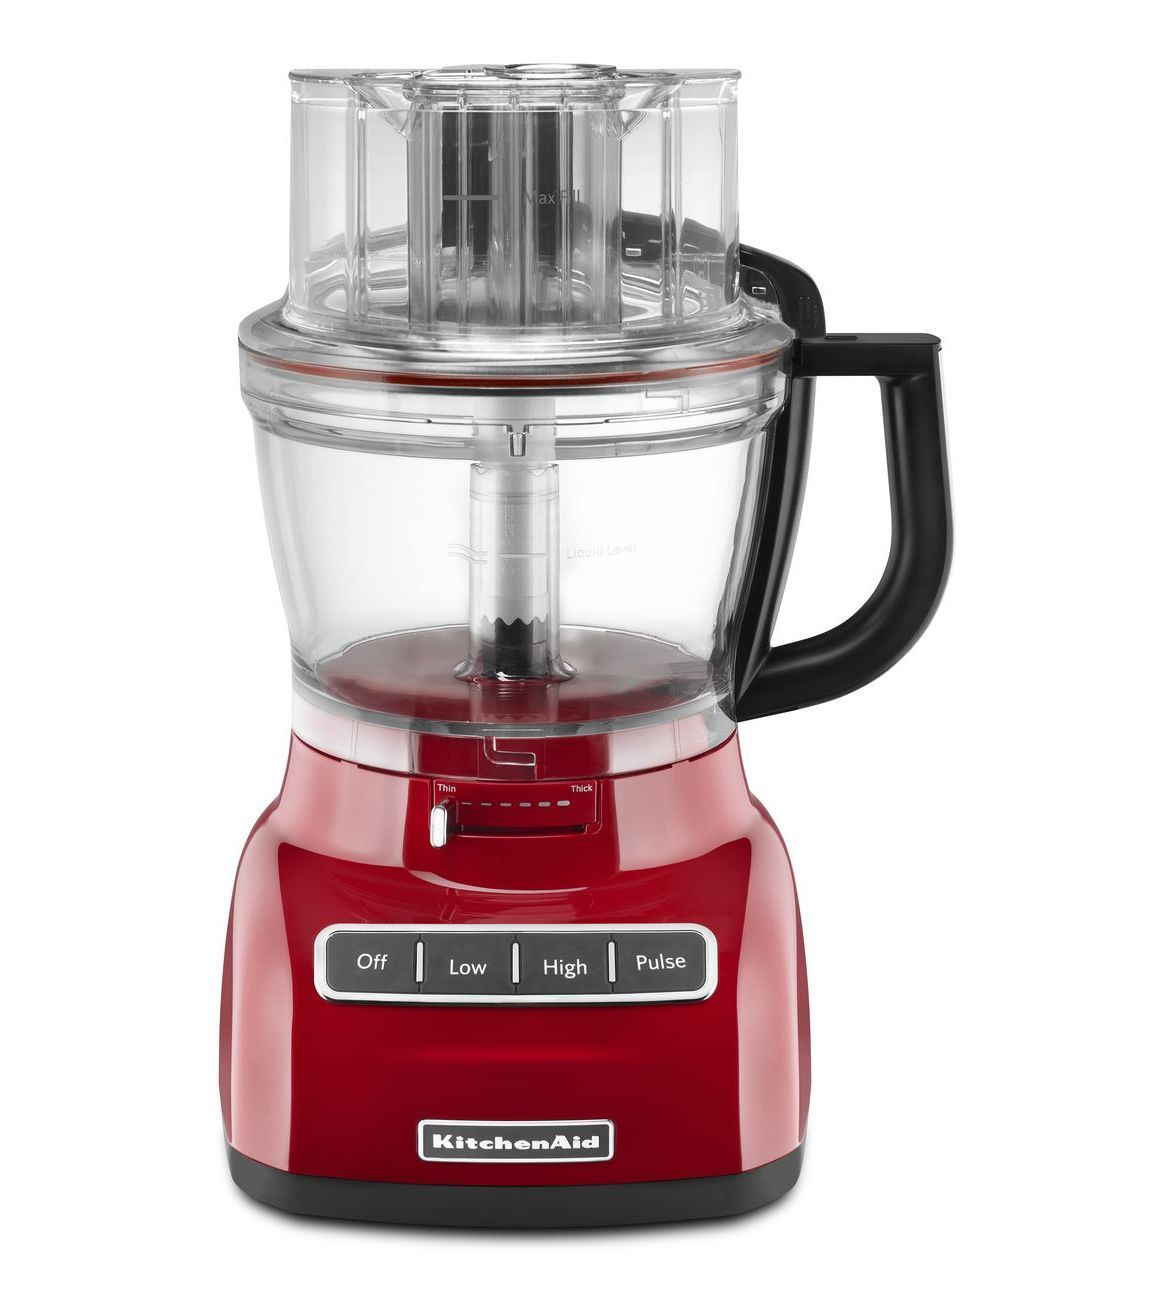 The KitchenAid® 13-Cup Food Processor with the exclusive ExactSlice ...